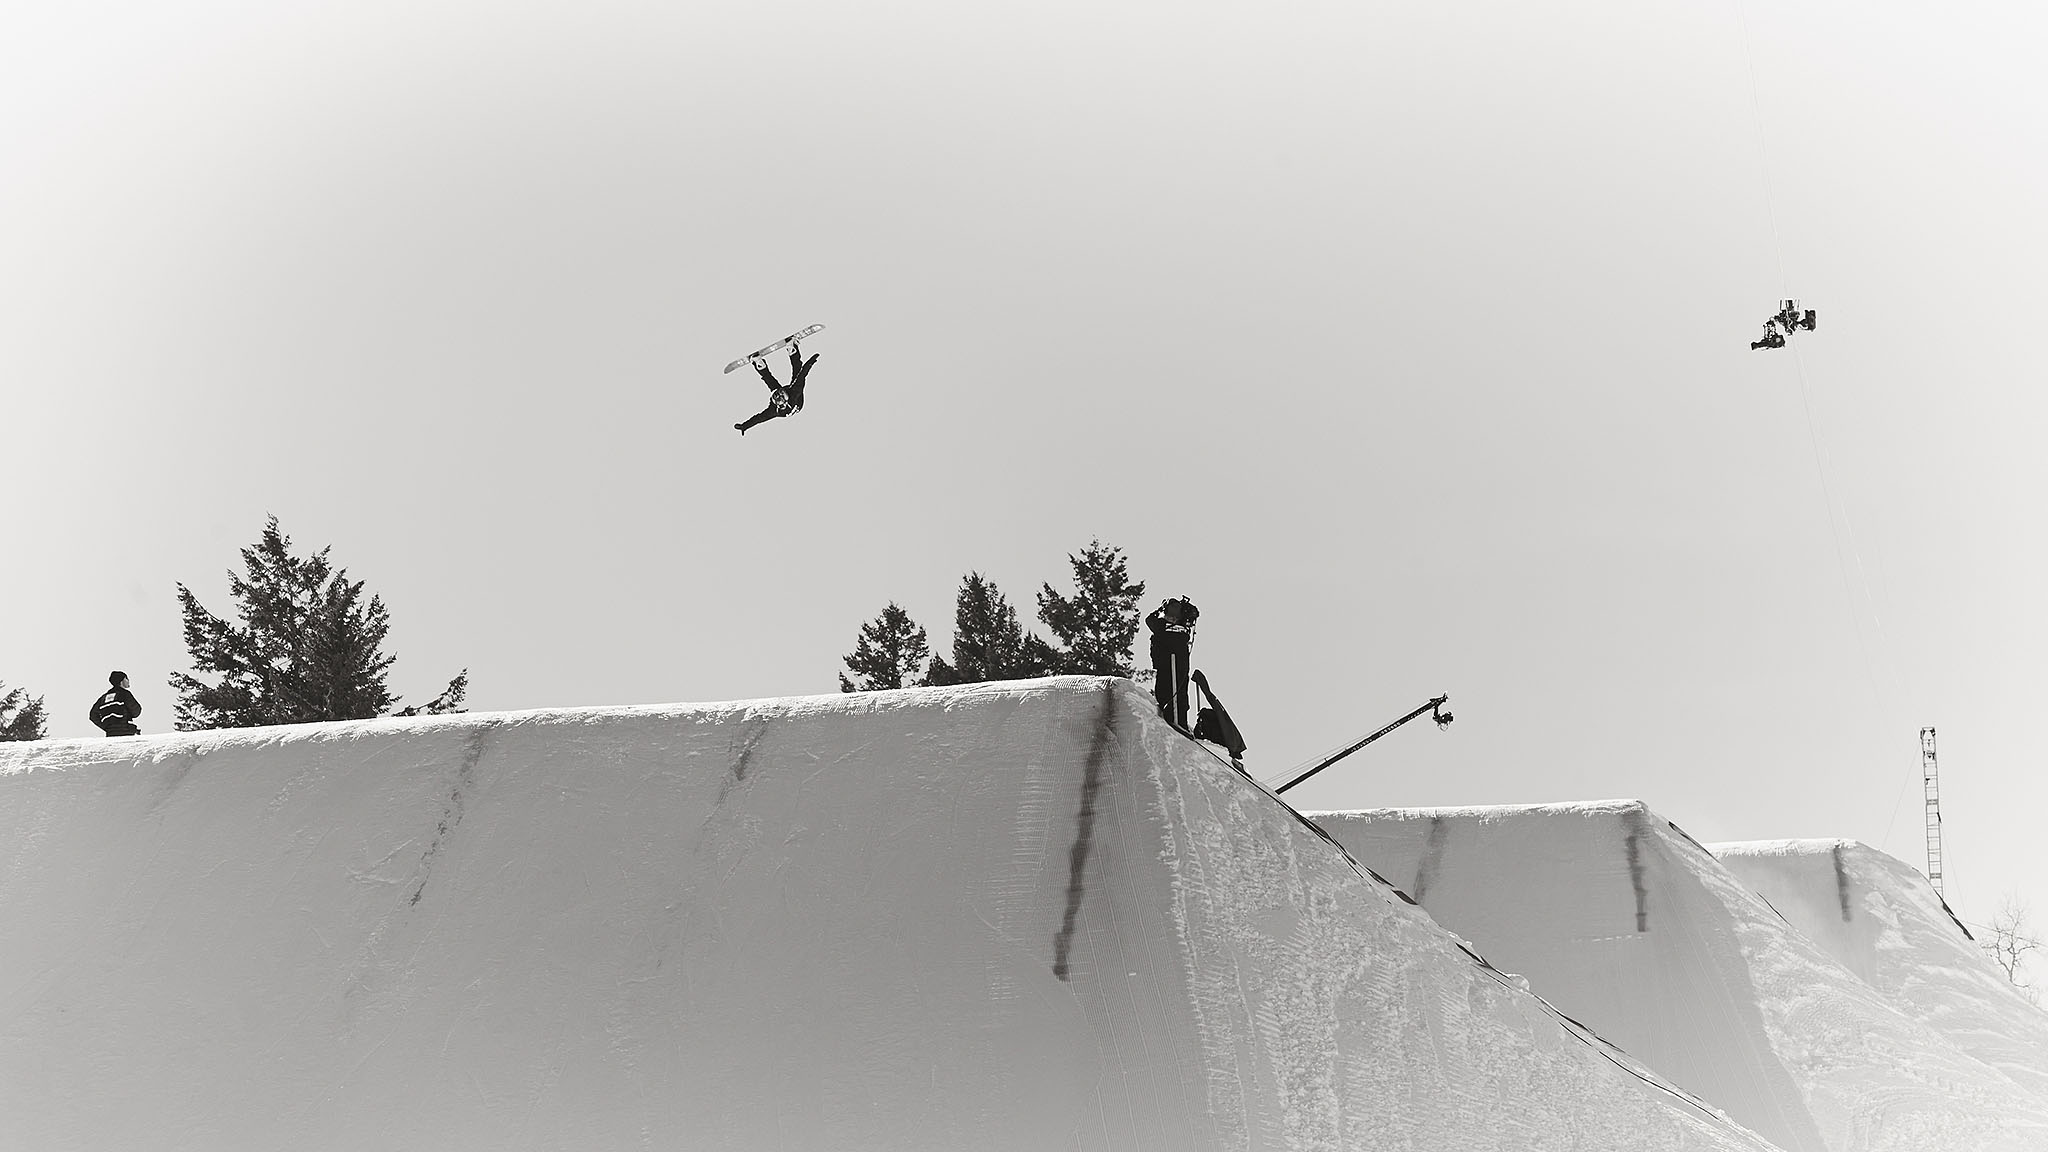 Most slopestyle courses are relatively the same: They start with a few rail gardens and end with three massive kickers. If you are a photographer who shoots slopestyle competitions regularly, it takes a certain amount of patience and creativity to keep thinking up ways to make the photos come out looking unique. Luckily Brit sensation Aimee Fuller, who incidentally is one of the only women to successfully land a double backflip, came to the rescue for this photo, shot during practice at X Games Aspen 2014.